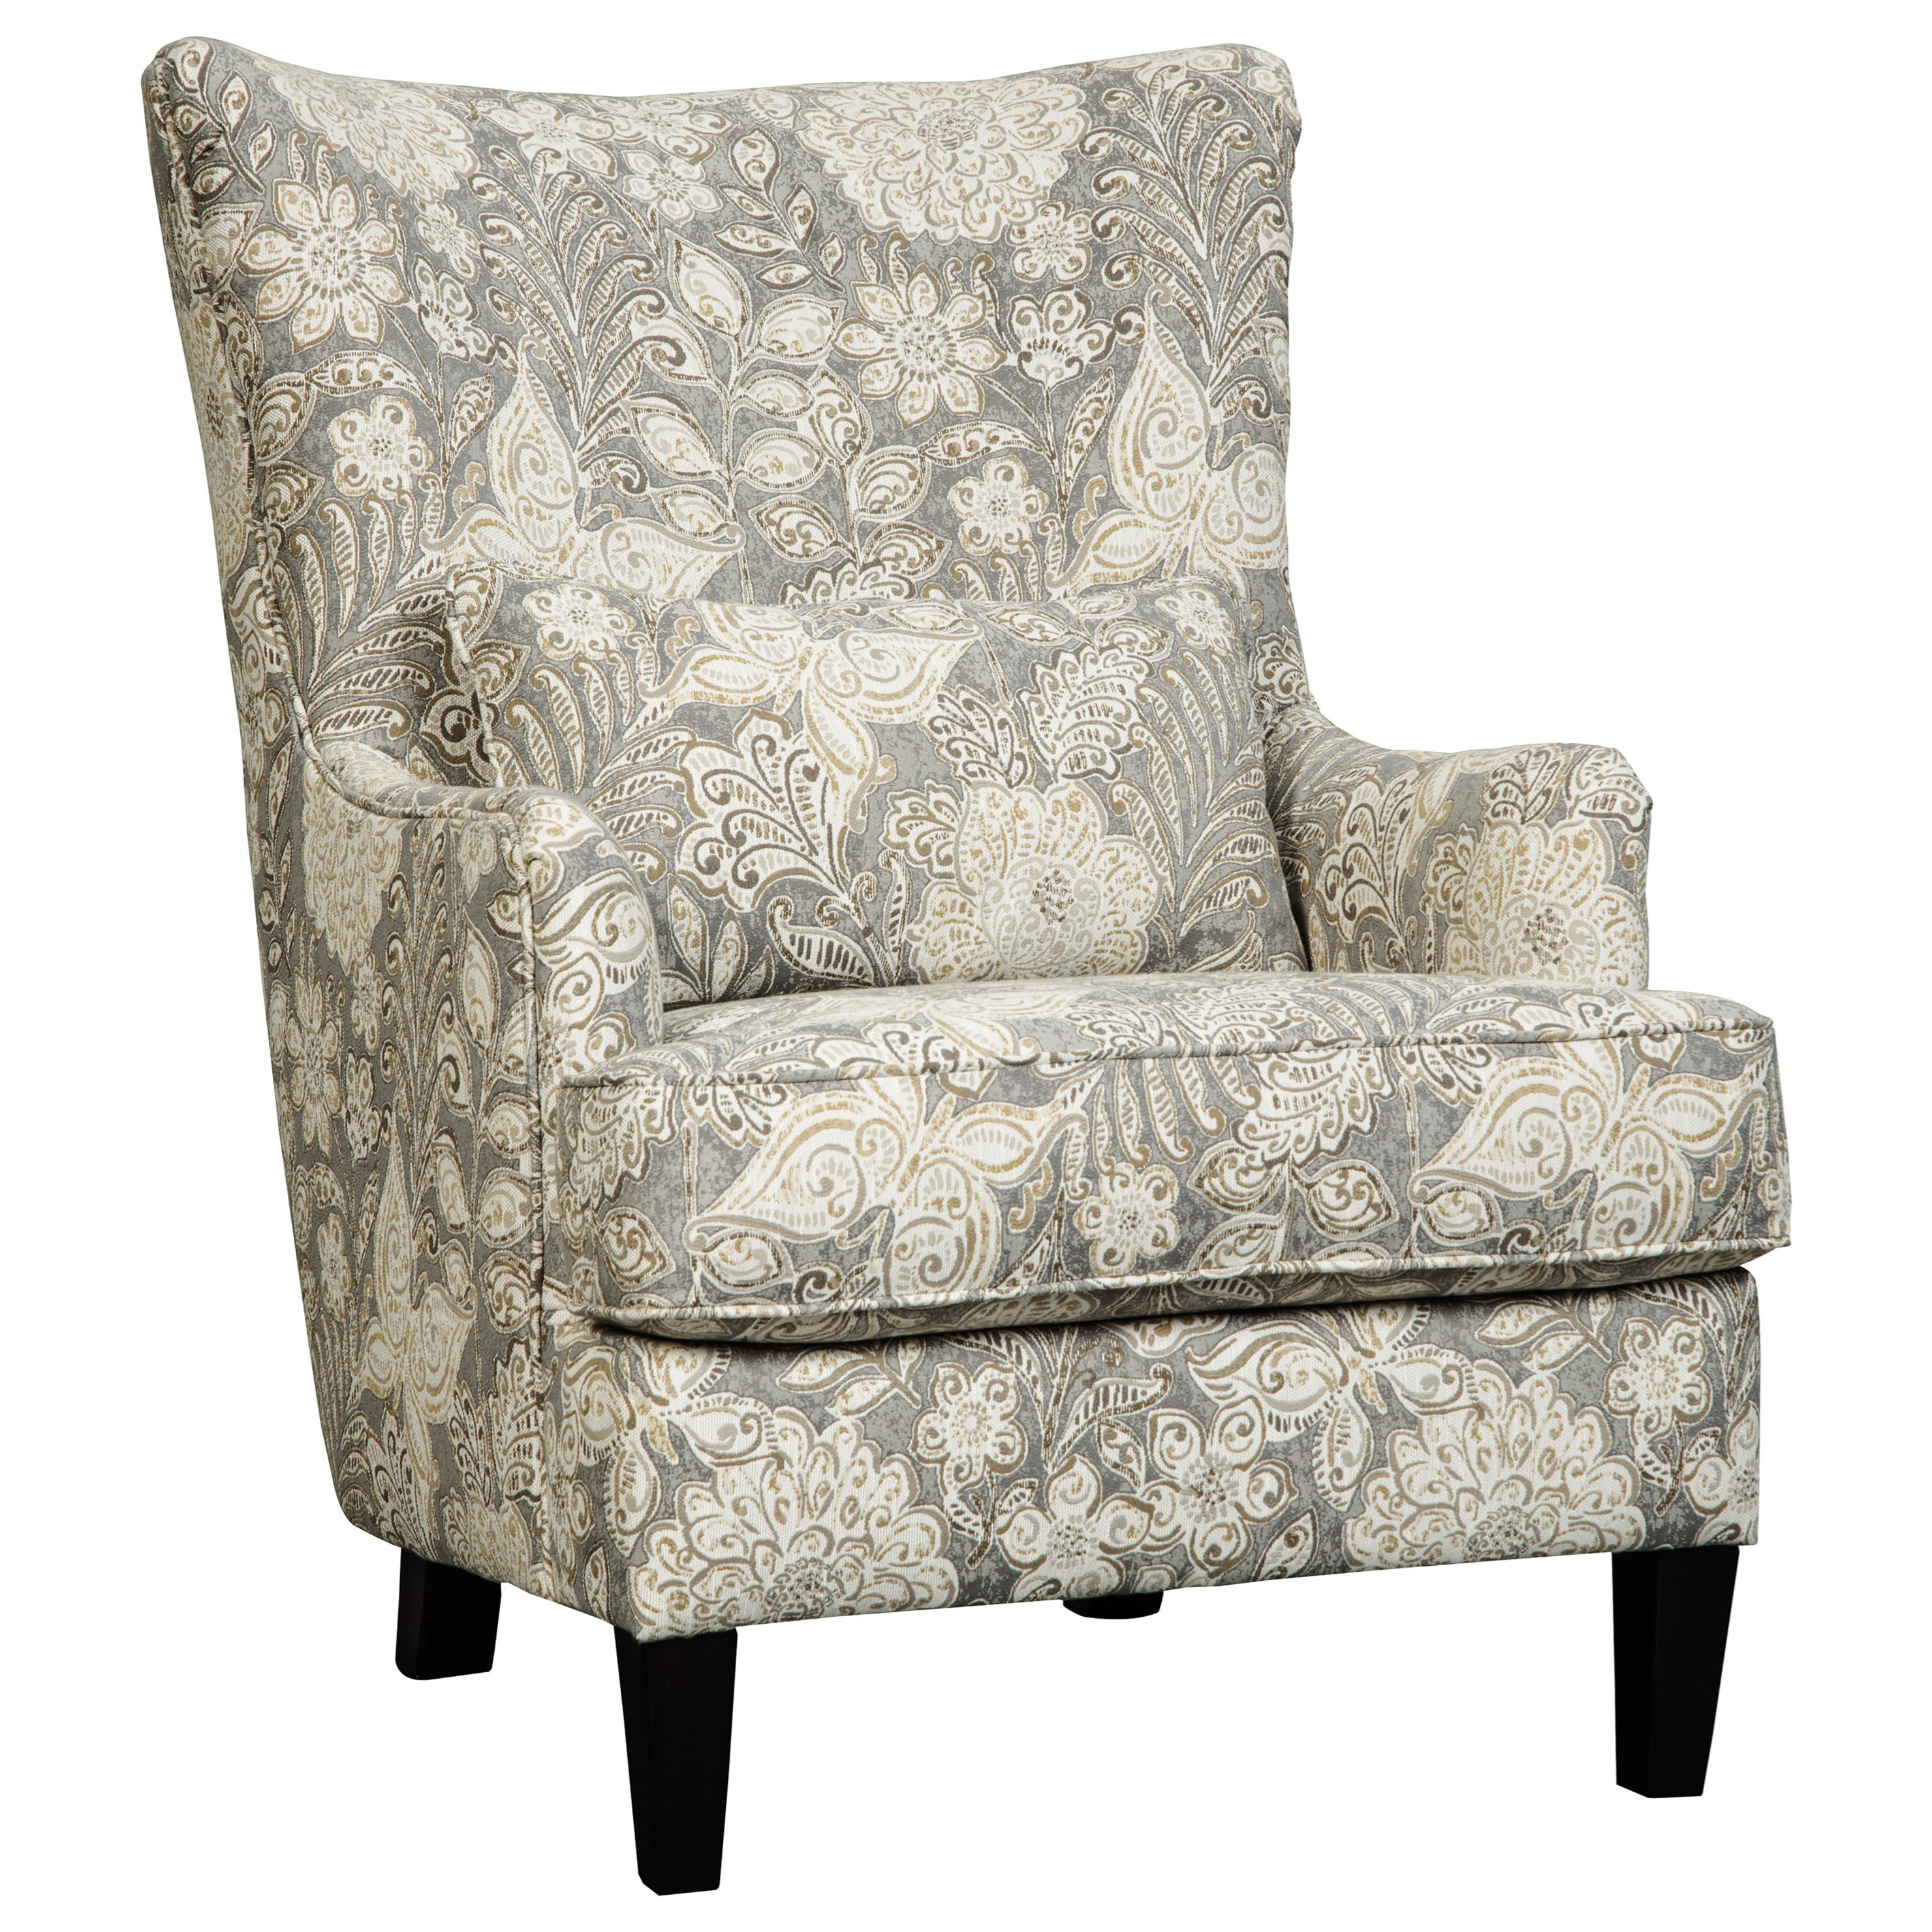 Benchcraft Avelynne Accent Chair - Item Number: 8130221